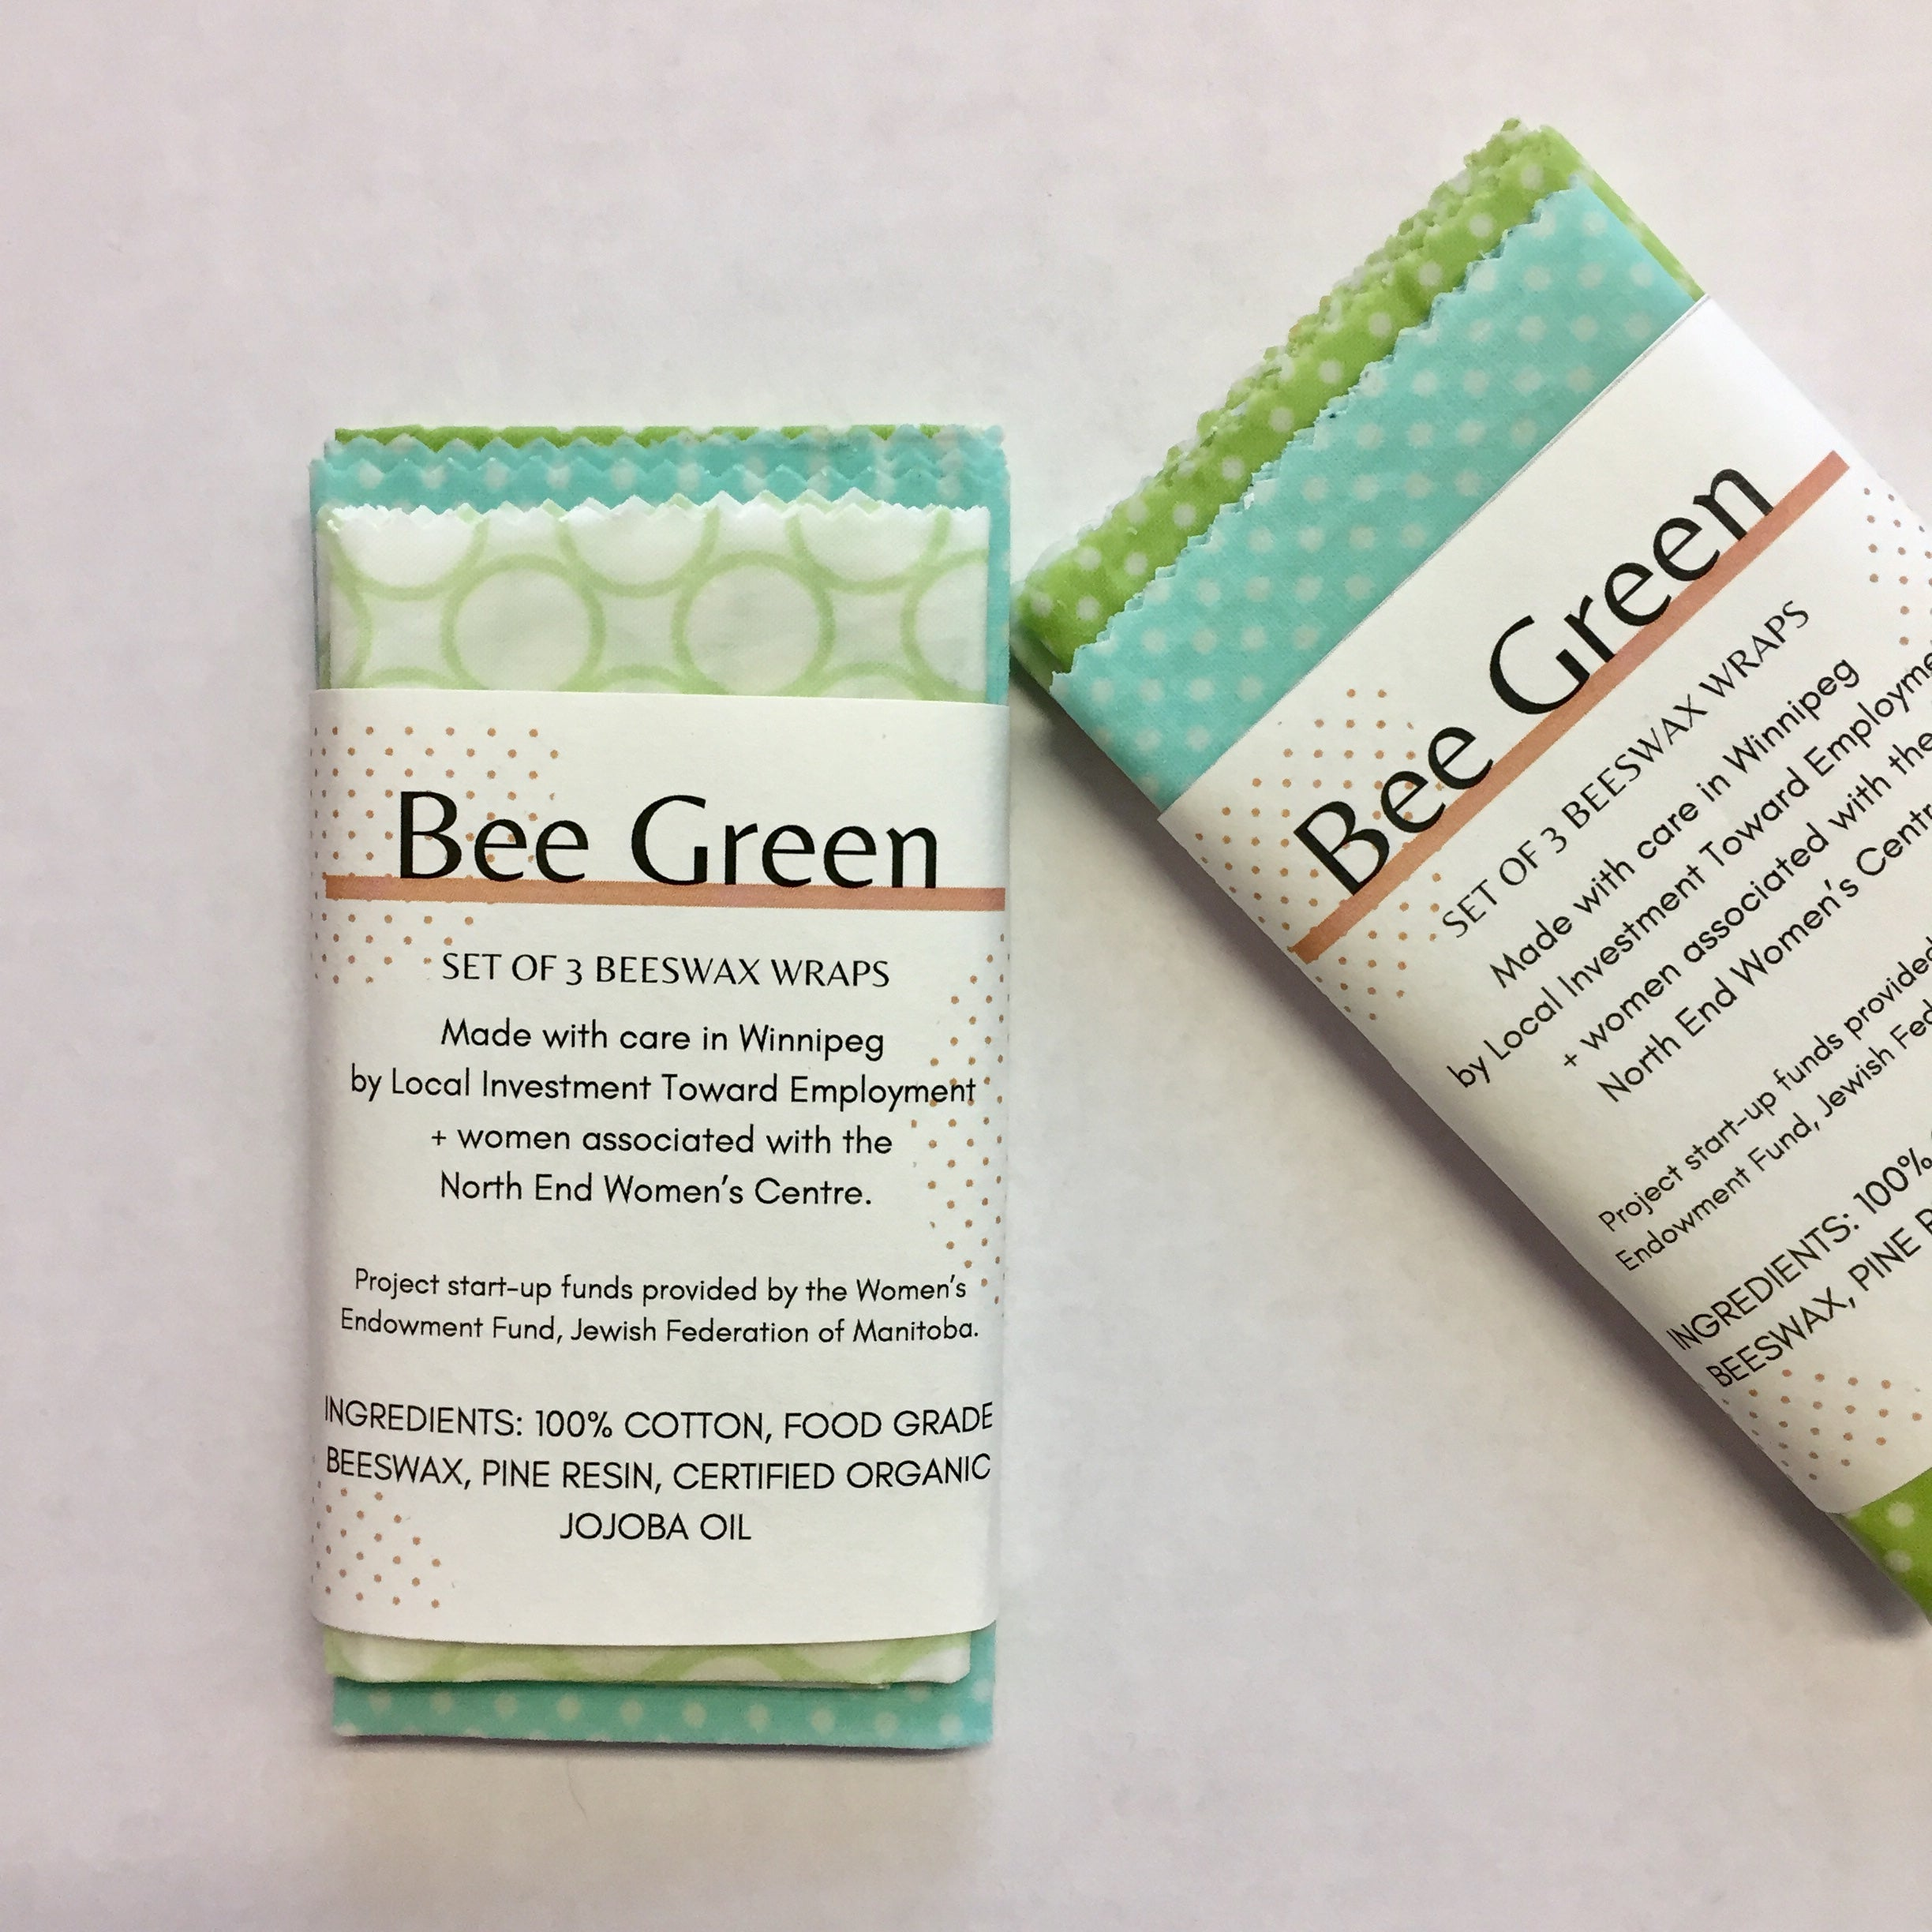 Bee Green Beeswax Wraps